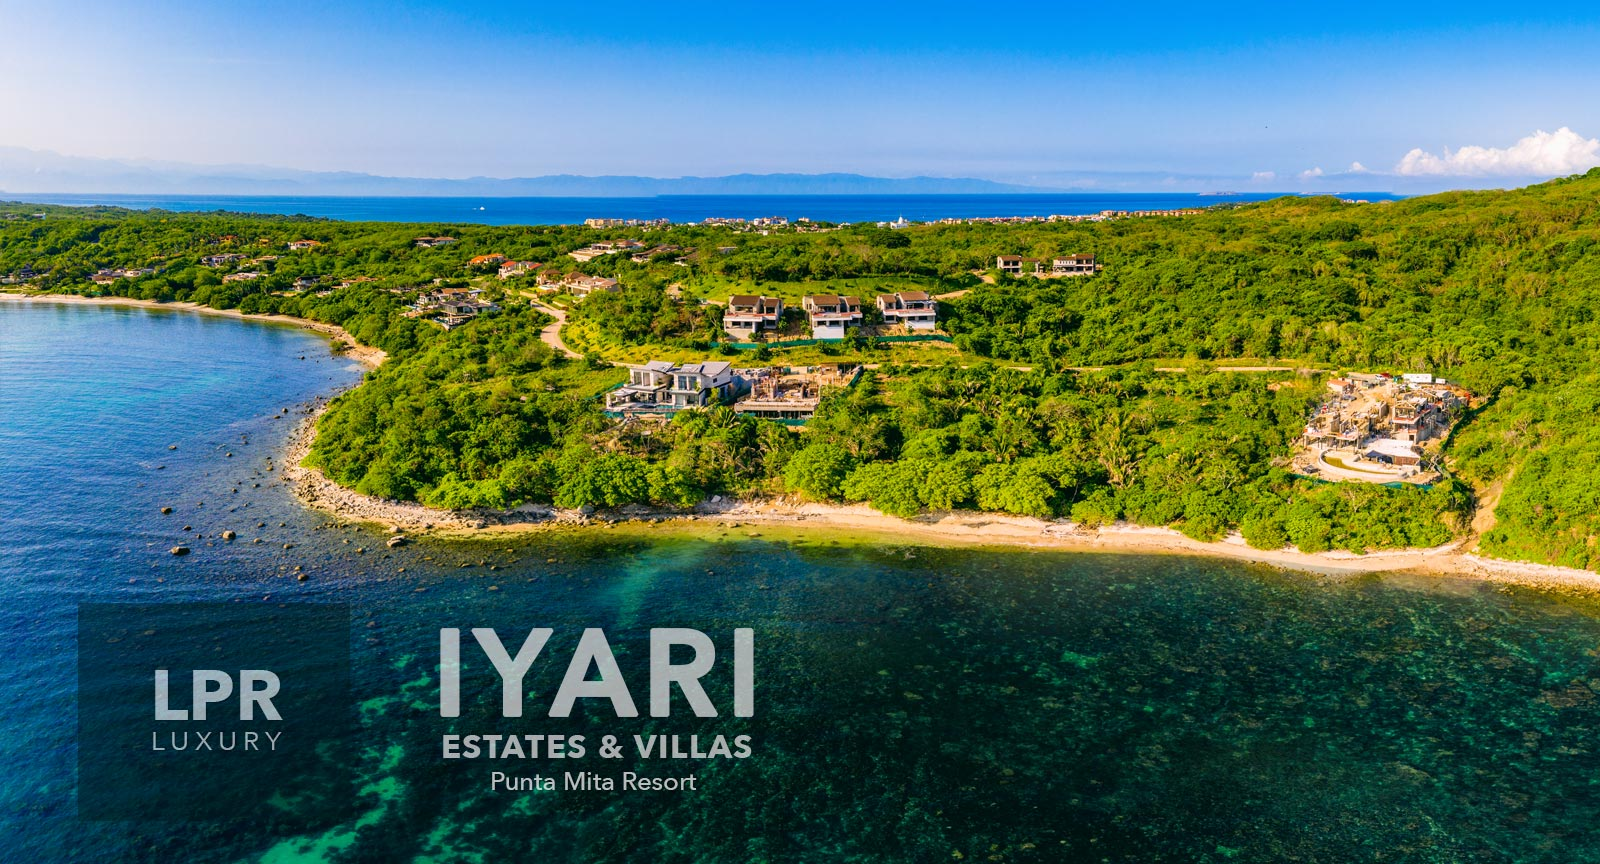 Iyari Estates & Villas - Luxury real estate at the Punta Mita Resort, Riviera Nayarit, Mexico